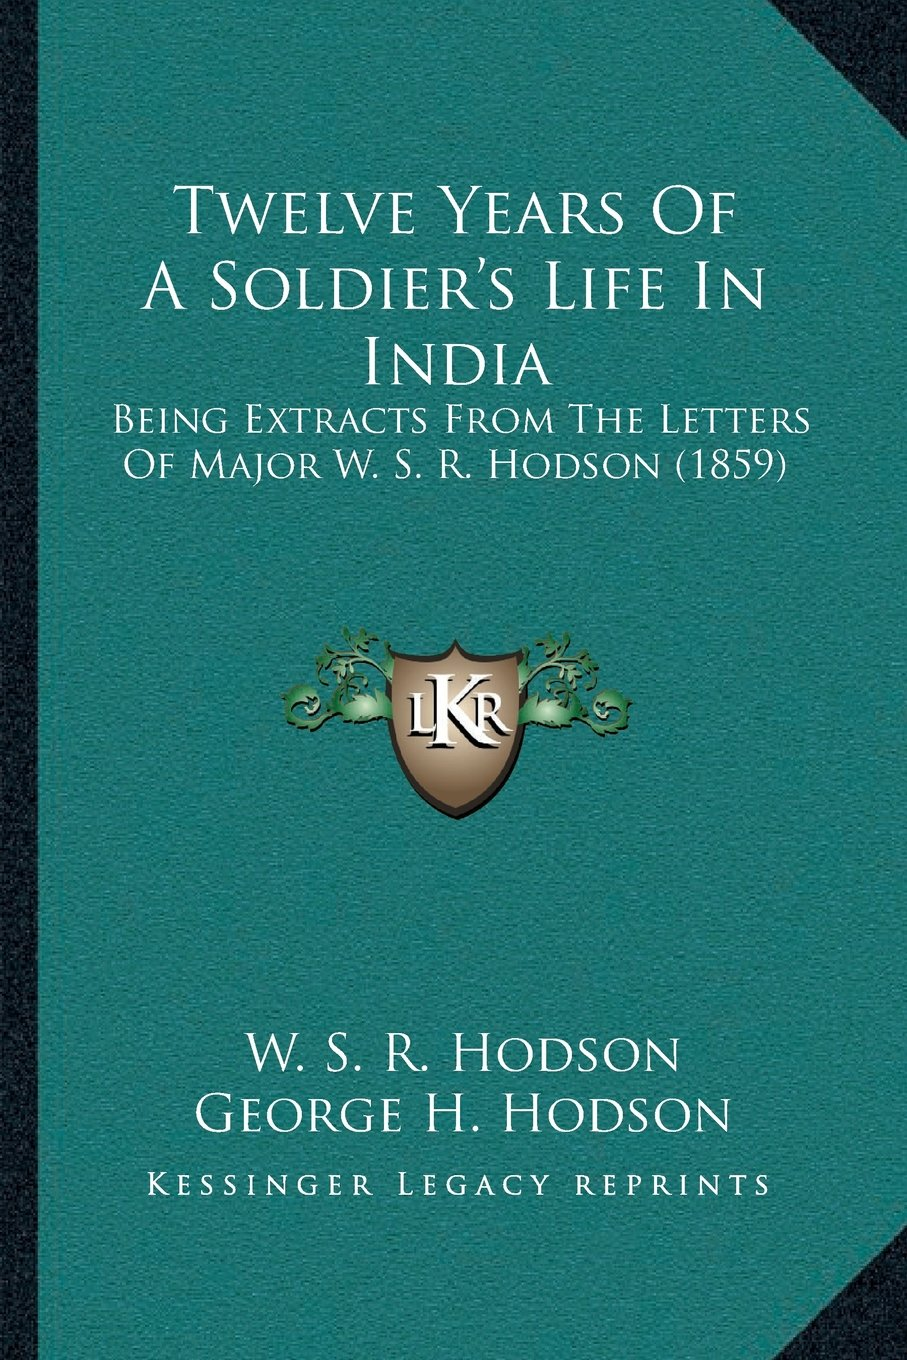 Twelve Years Of A Soldier's Life In India: Being Extracts From The Letters Of Major W. S. R. Hodson (1859) PDF